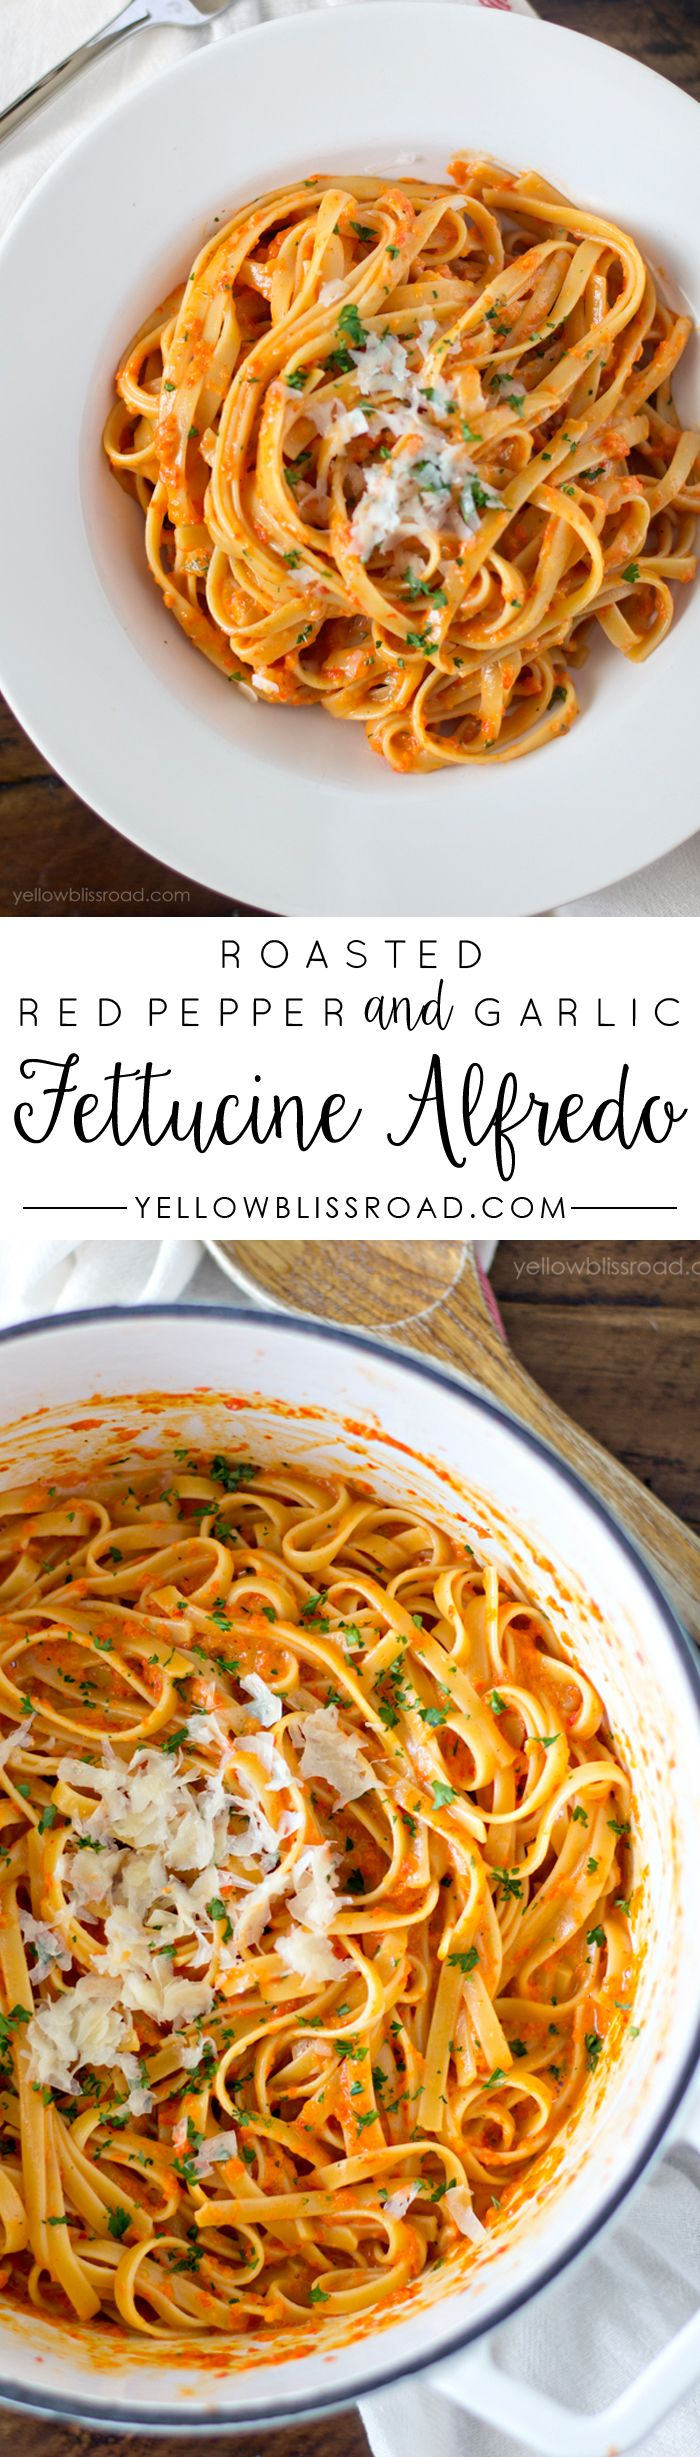 Roasted Garlic and Red Pepper Fettucine Alfredo